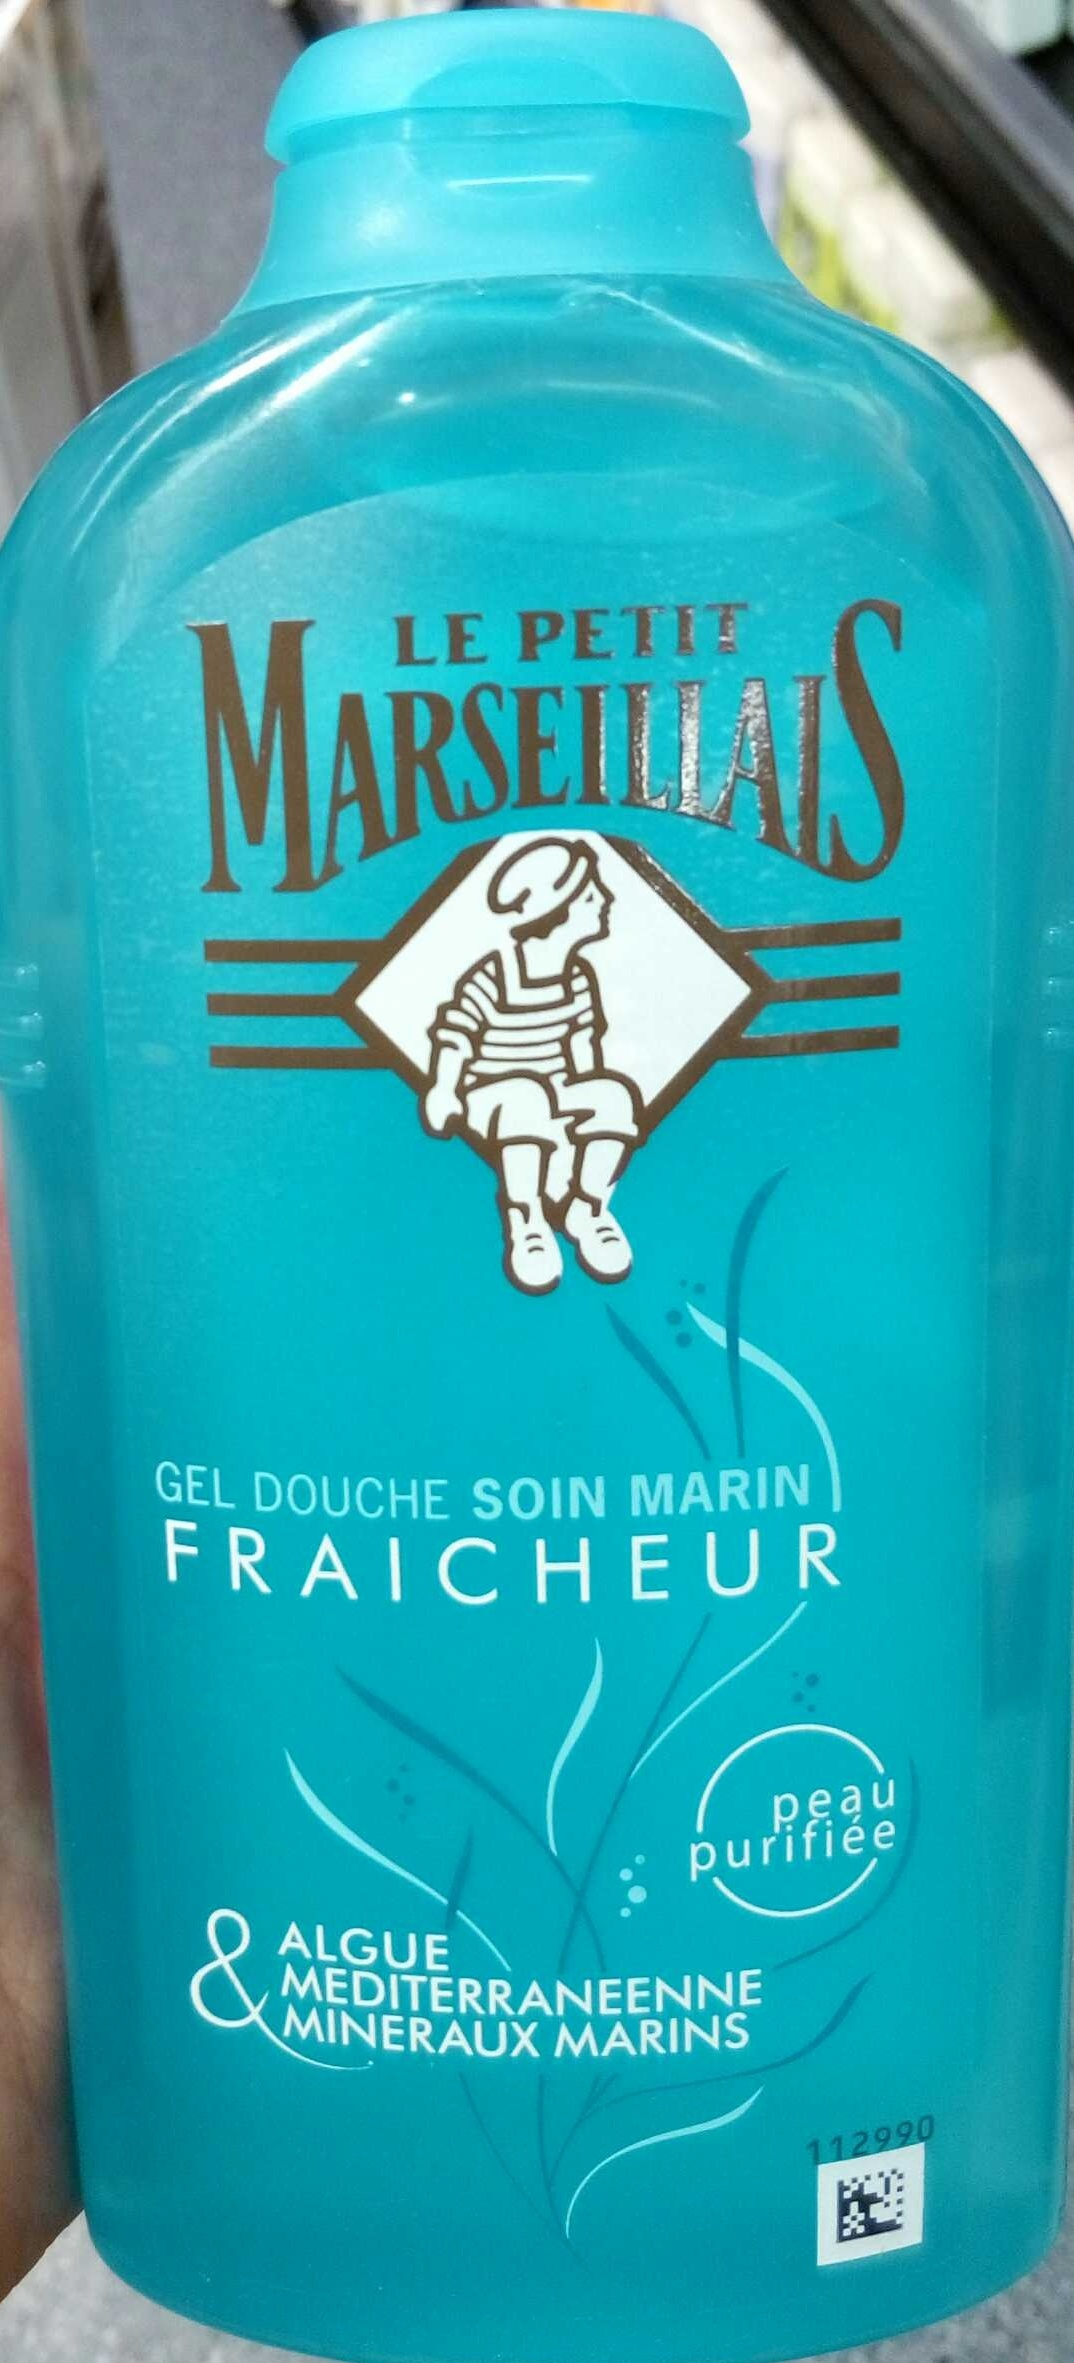 gel douche soin marin fraicheur le petit marseillais 250 ml 8 4 fl oz. Black Bedroom Furniture Sets. Home Design Ideas